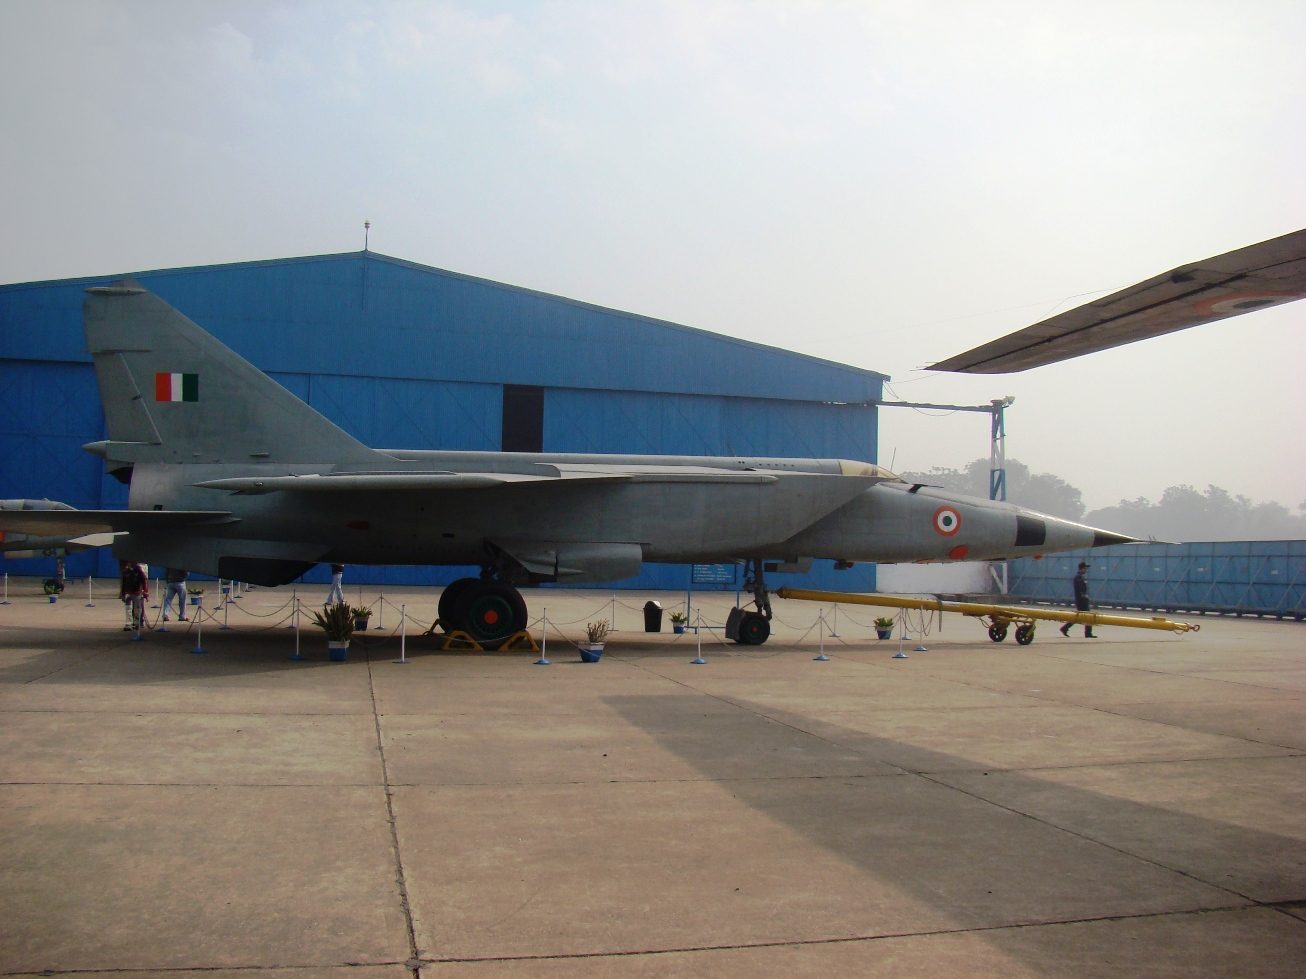 The Indian Air Force Museum